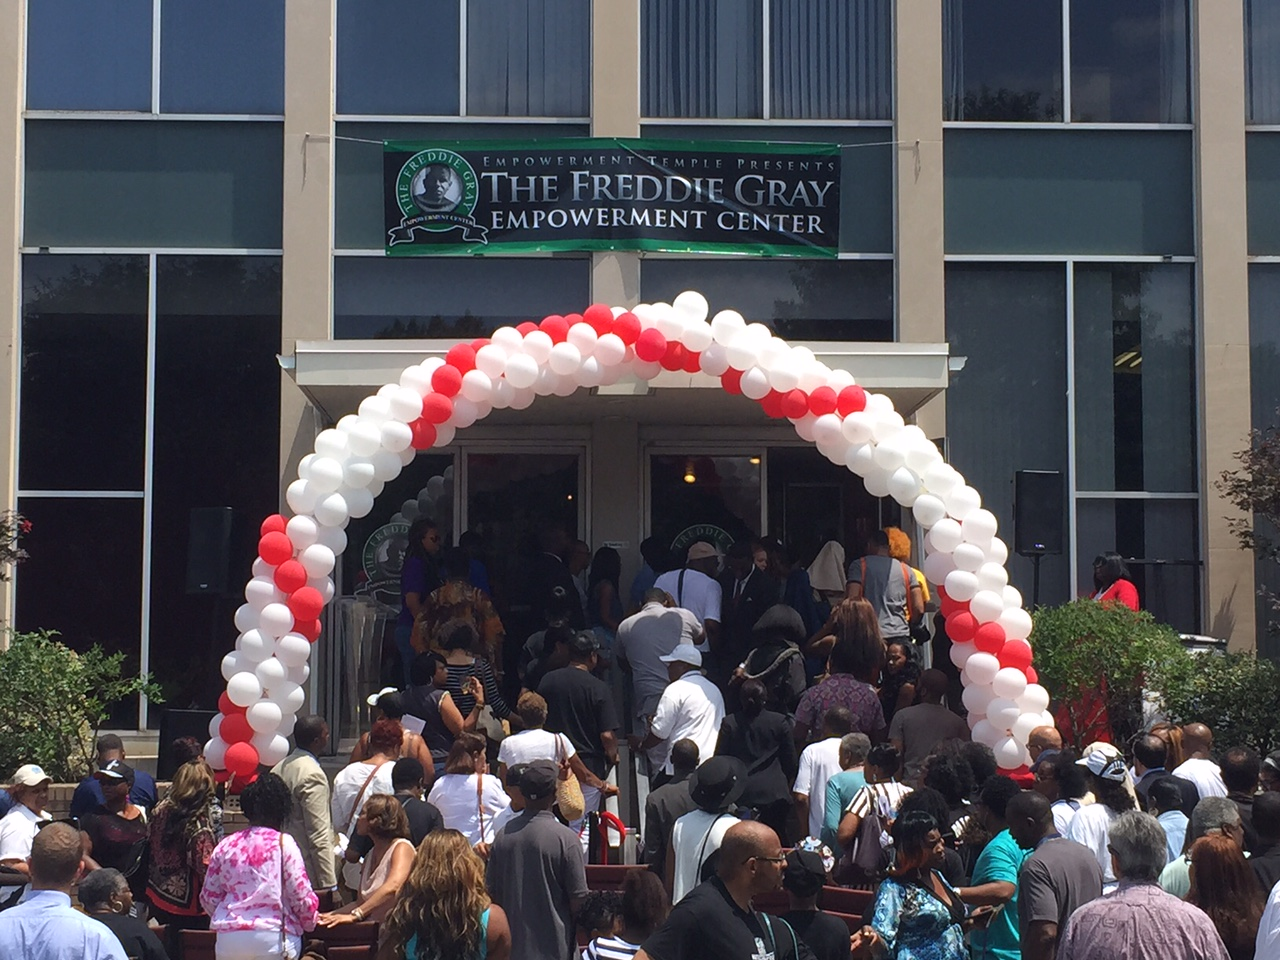 Freddie Gray Empowerment Center opens